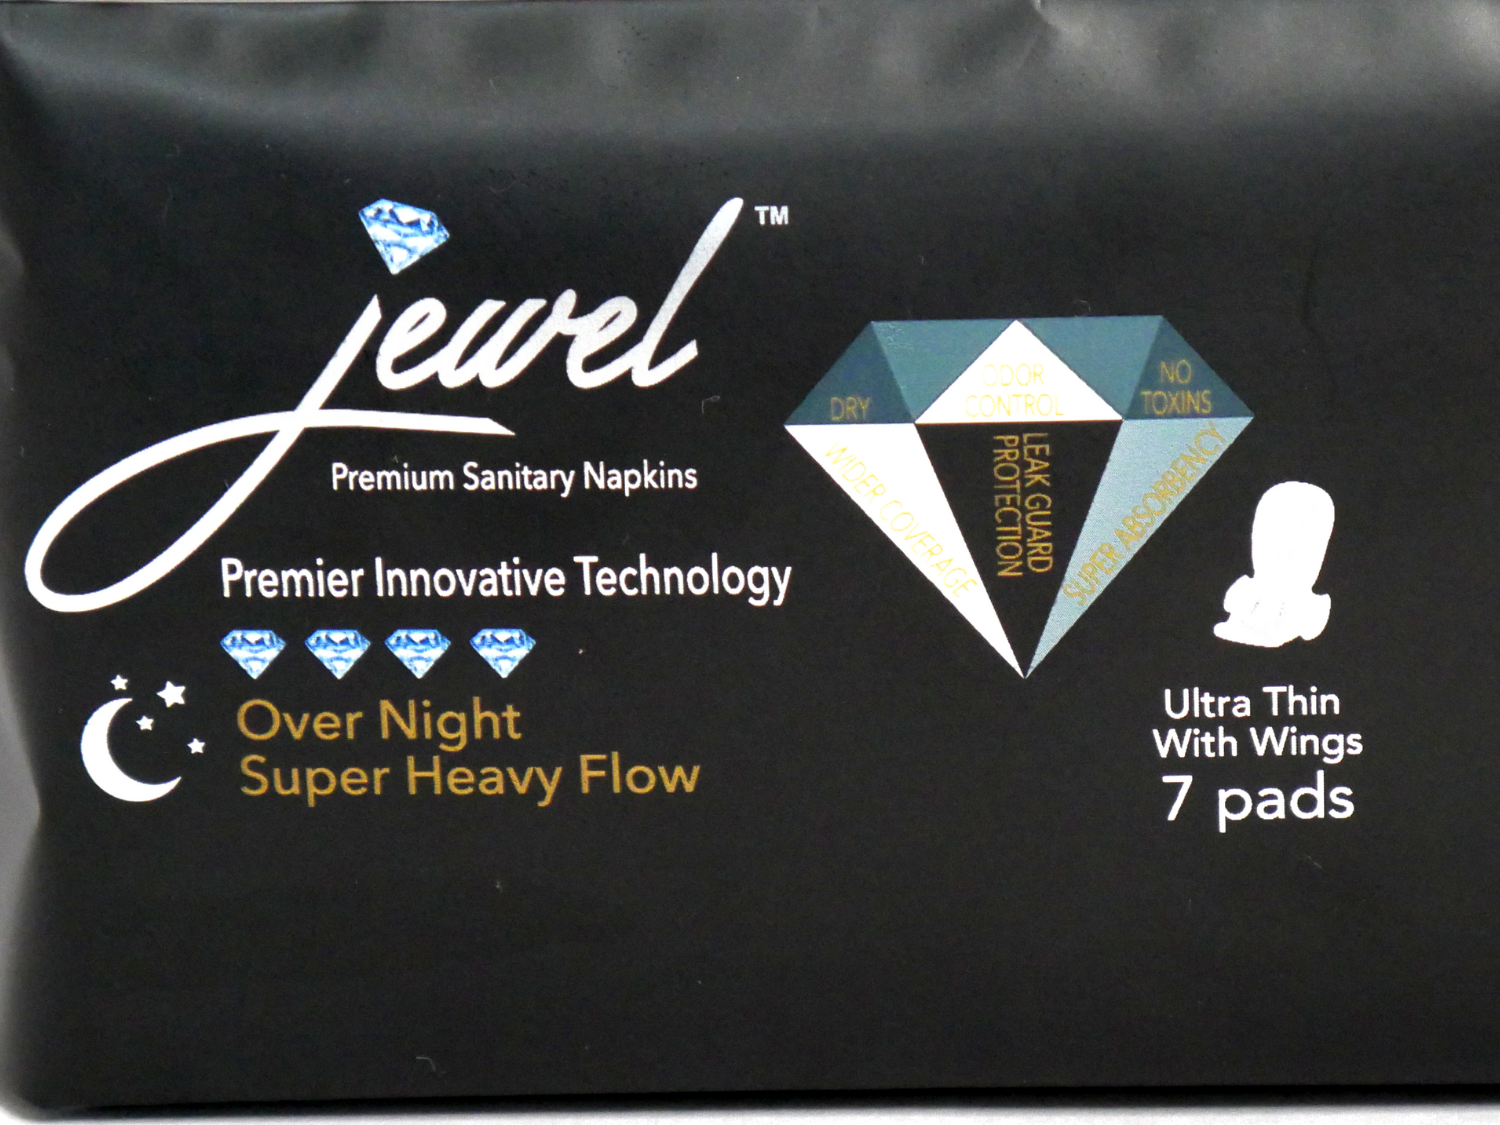 JEWEL PADS: OVERNIGHT USE FOR SUPER HEAVY FLOW